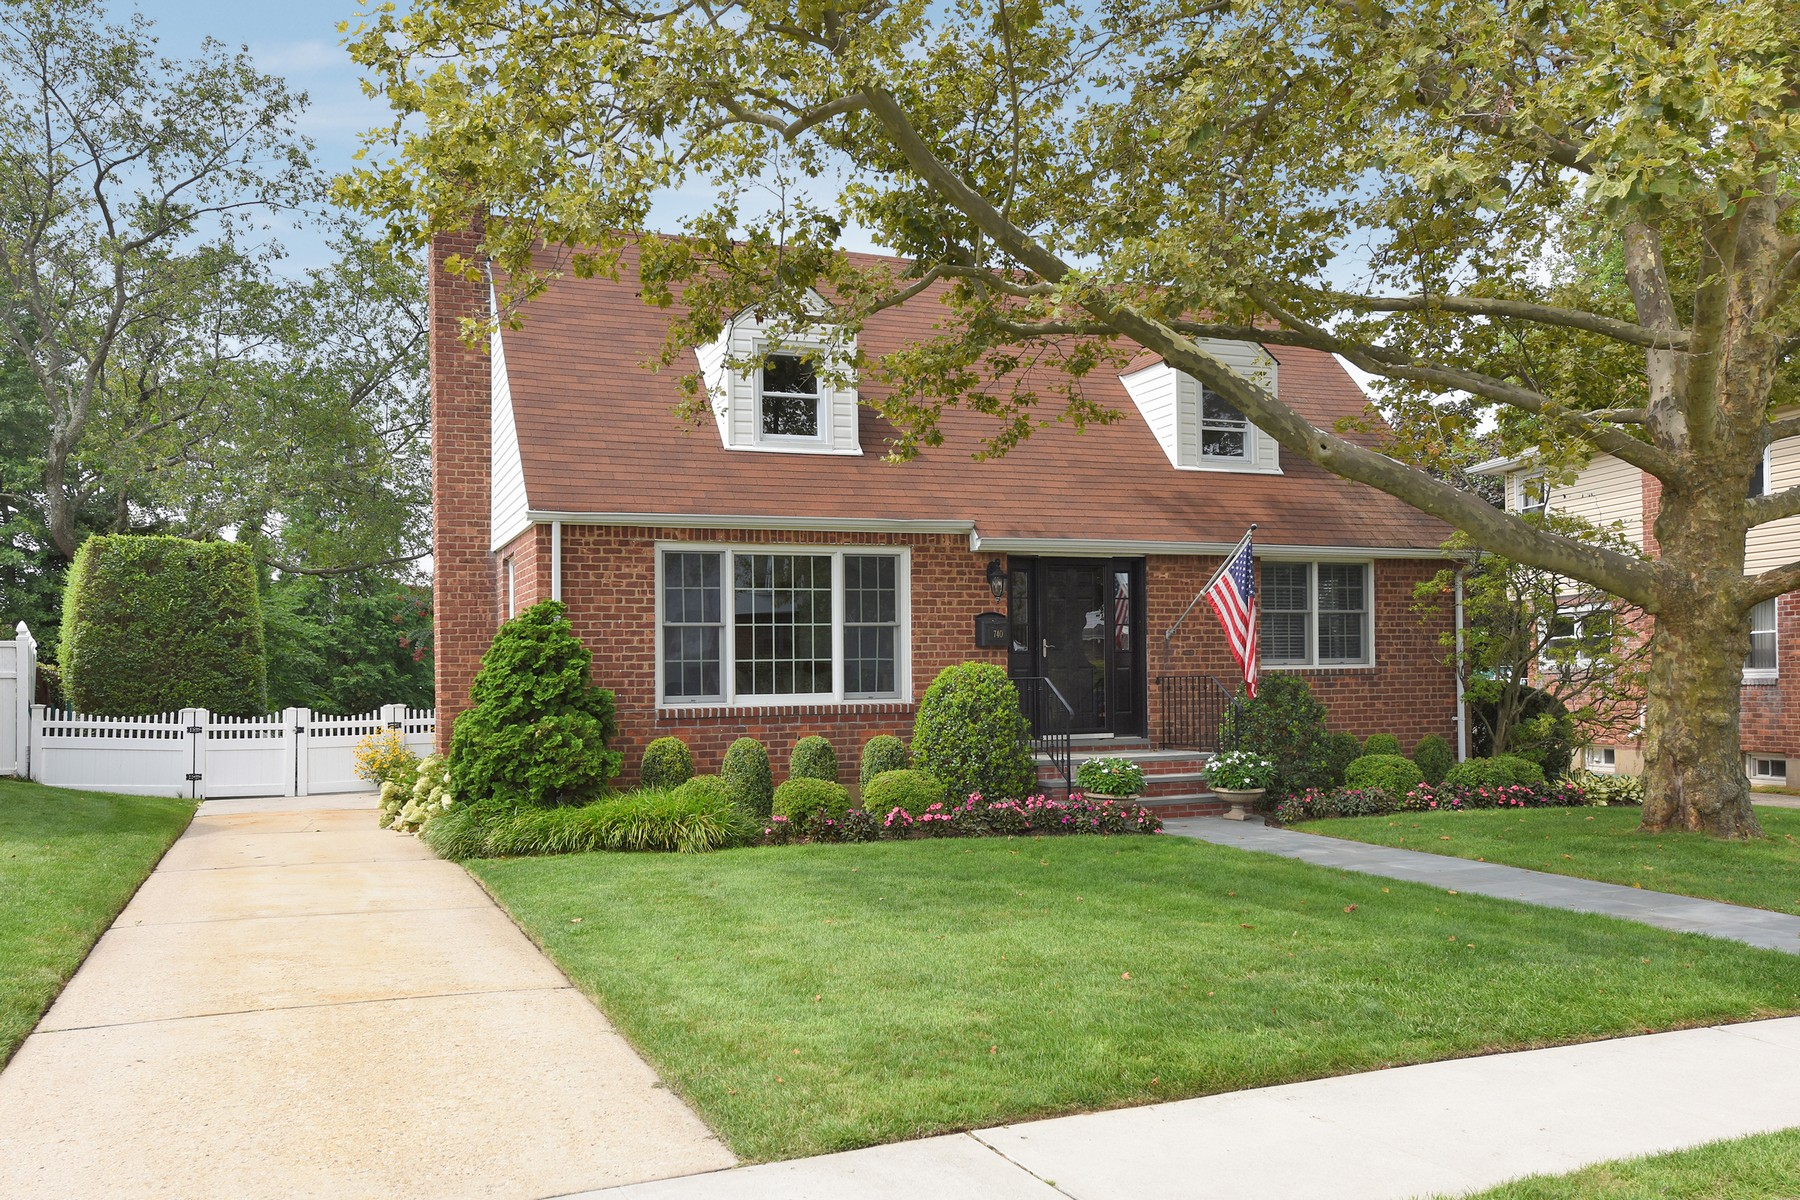 Single Family Homes for Sale at Franklin Square 740 Bayberry Rd Franklin Square, New York 11010 United States